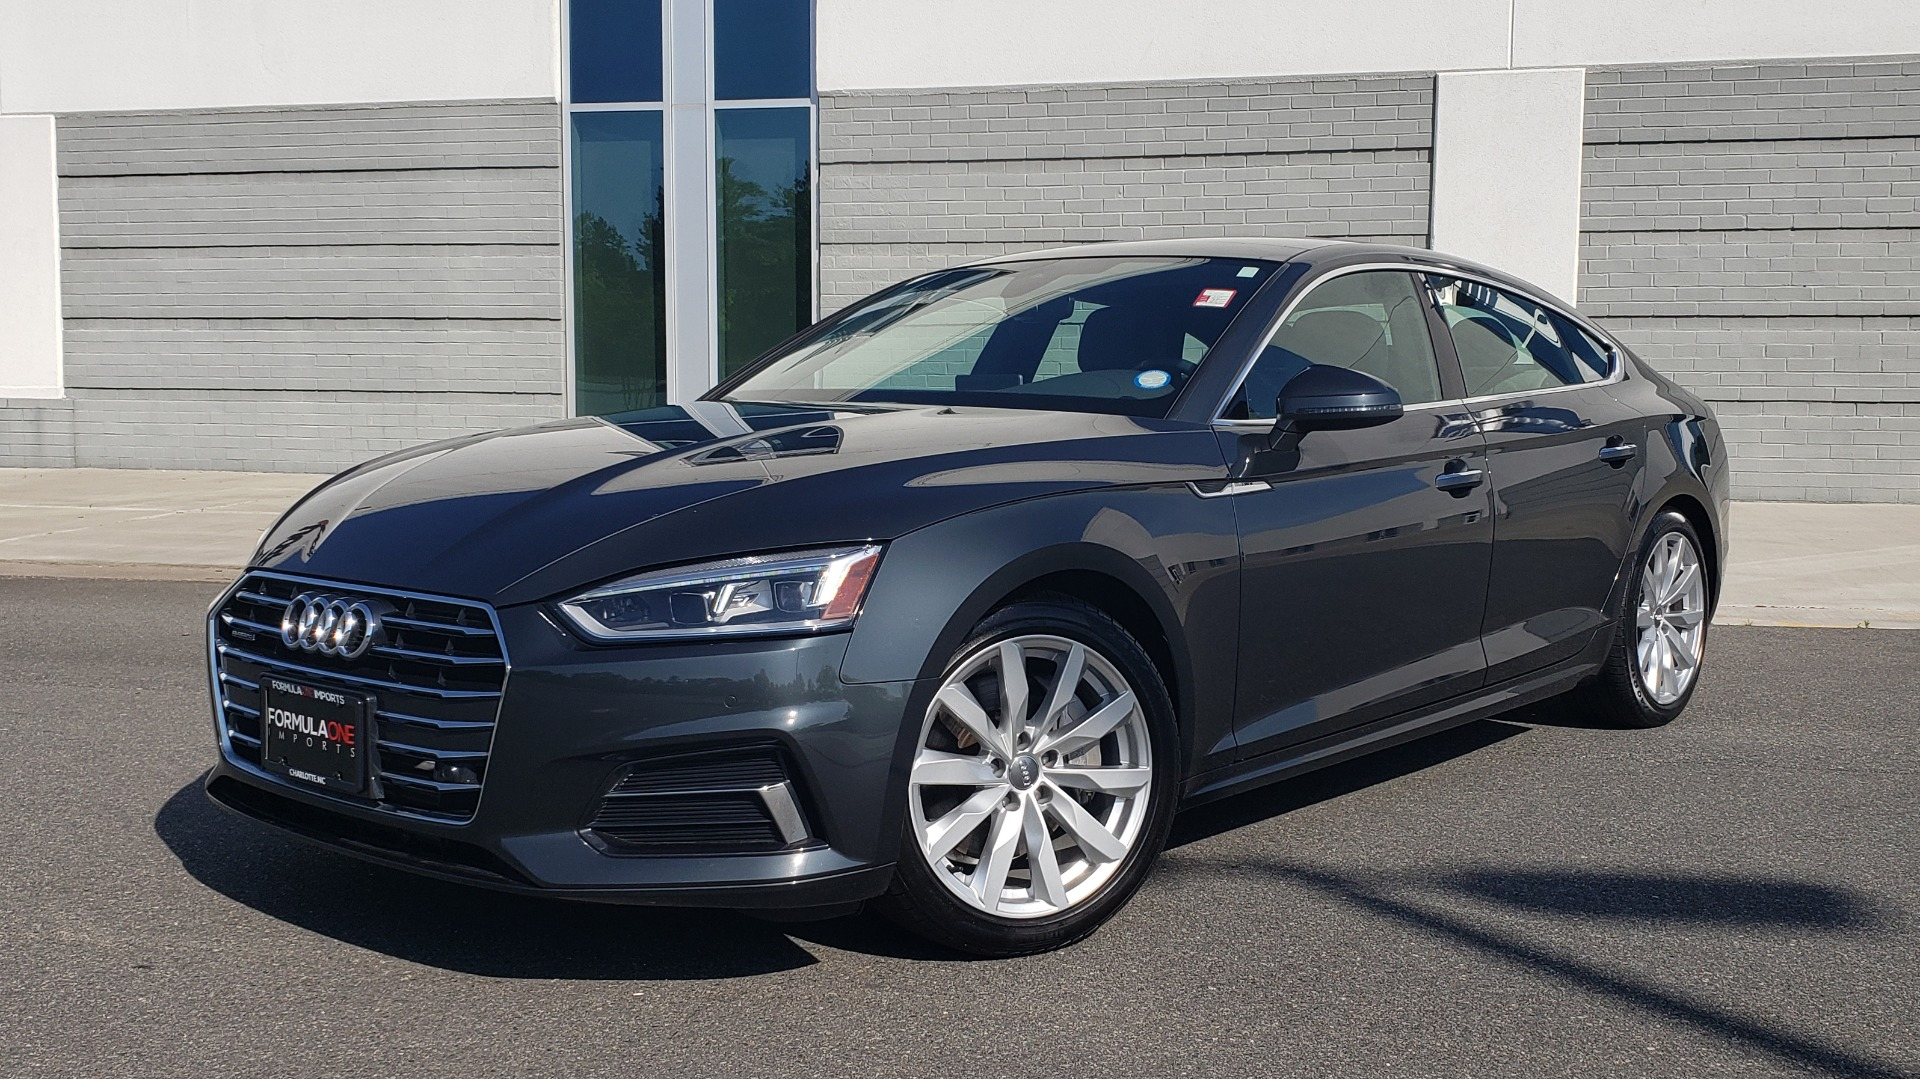 Used 2018 Audi A5 SPORTBACK PREMIUM PLUS 2.0T / AWD / NAV / B&O SND / SUNROOF / REARVIEW for sale Sold at Formula Imports in Charlotte NC 28227 10